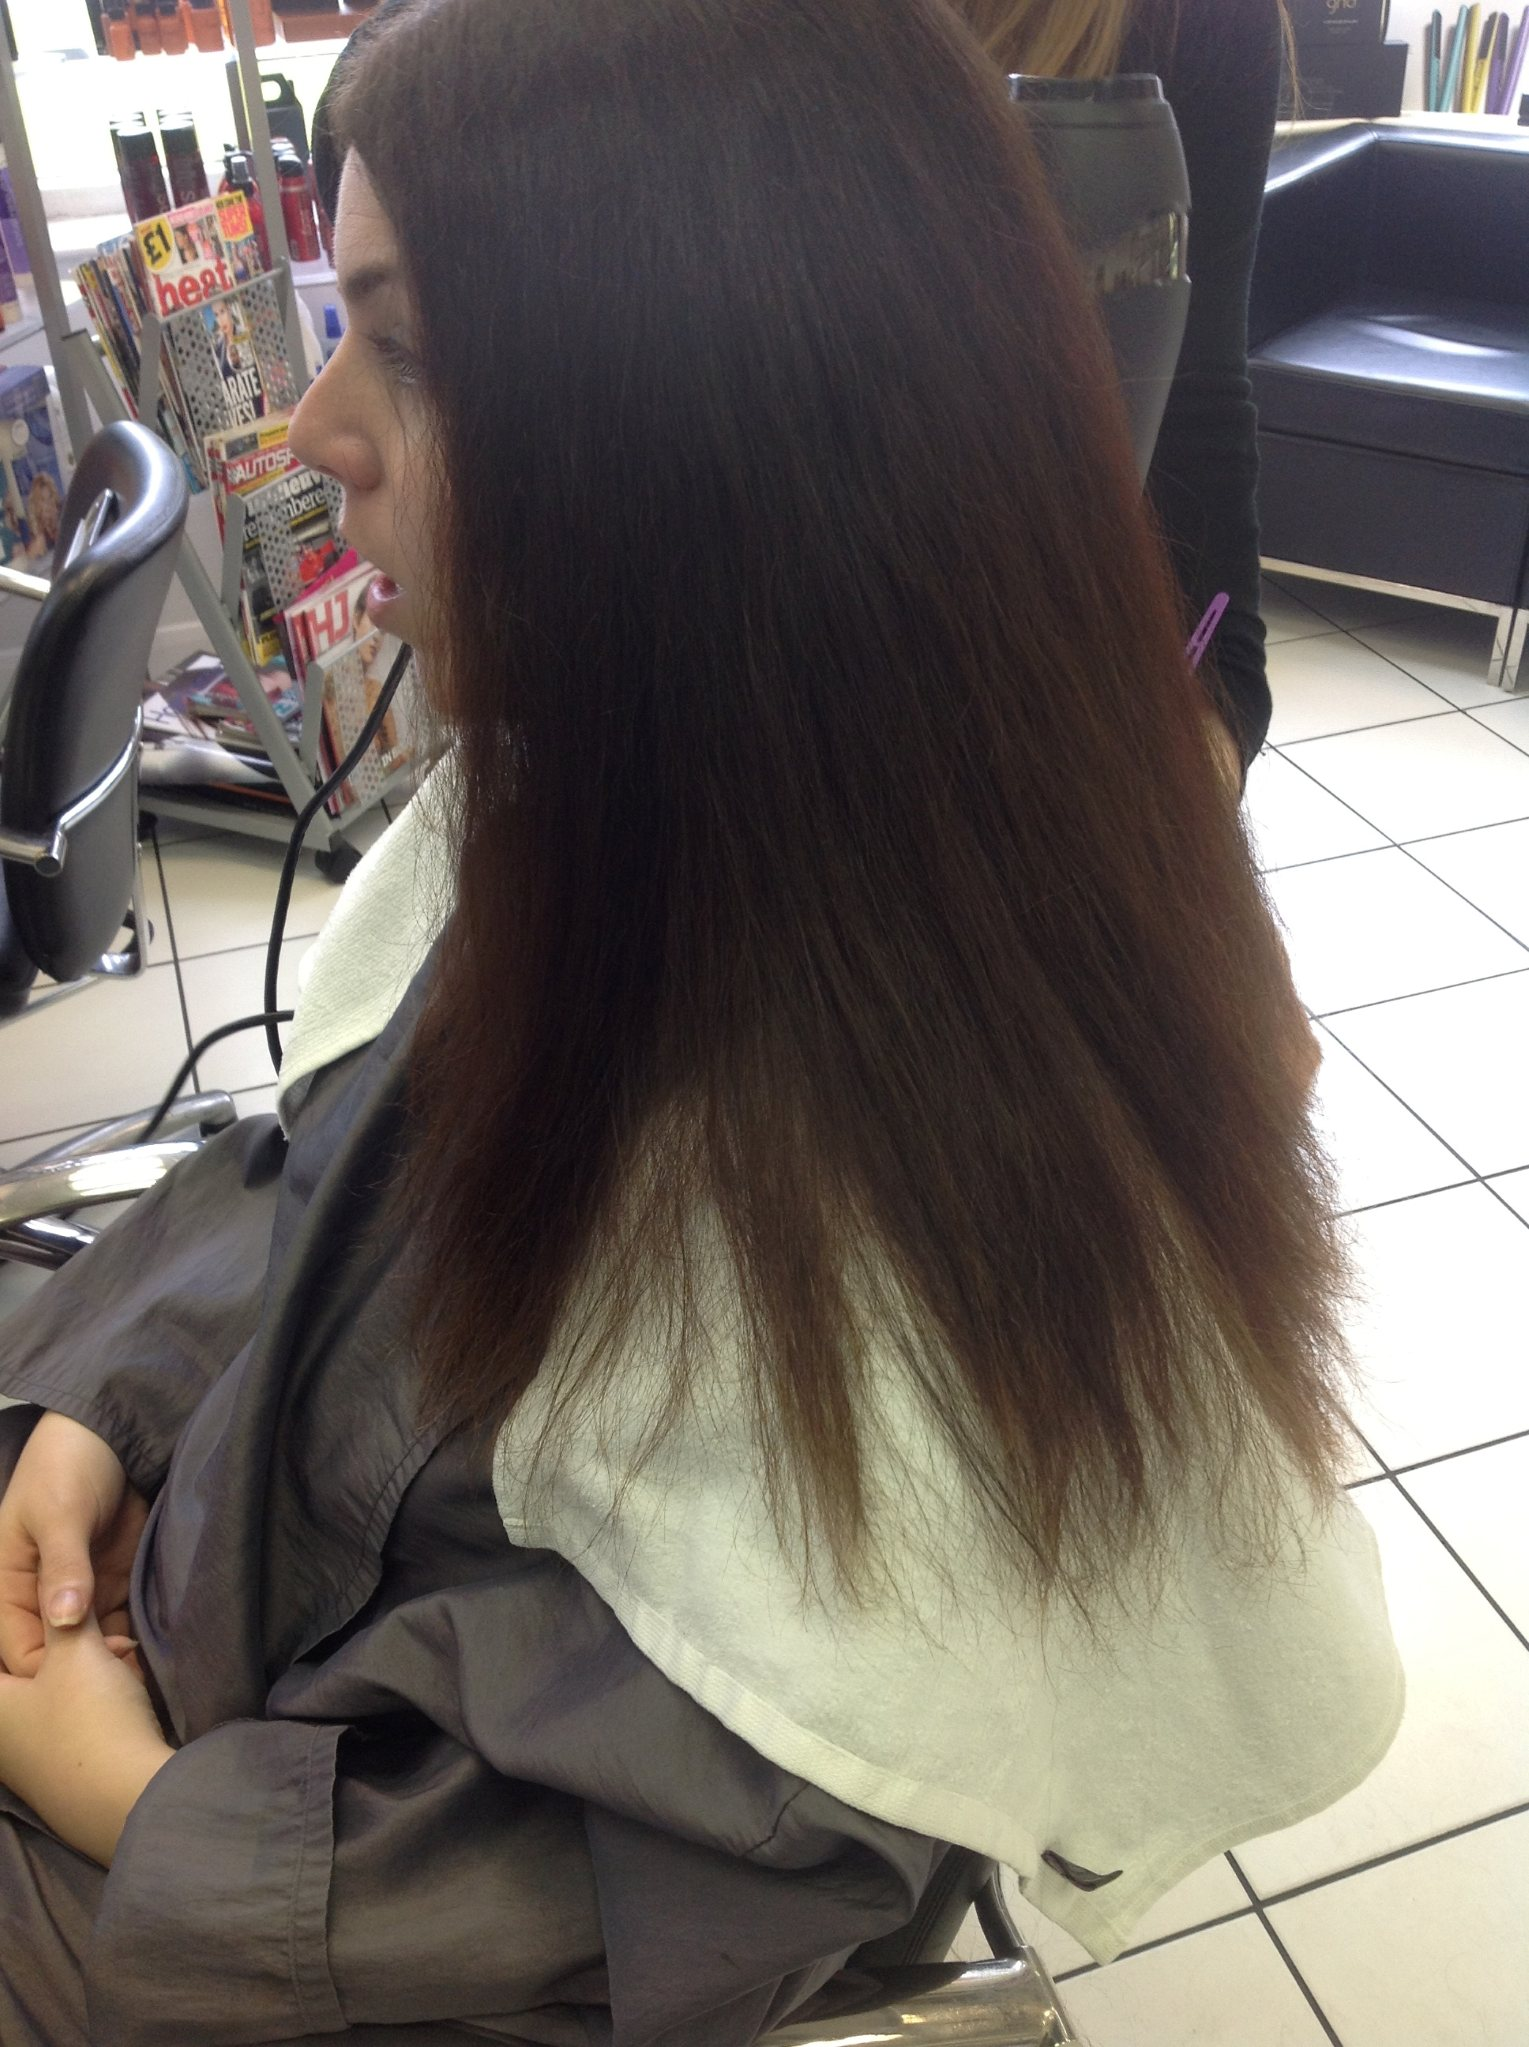 Brazilian Blow Dry - Before